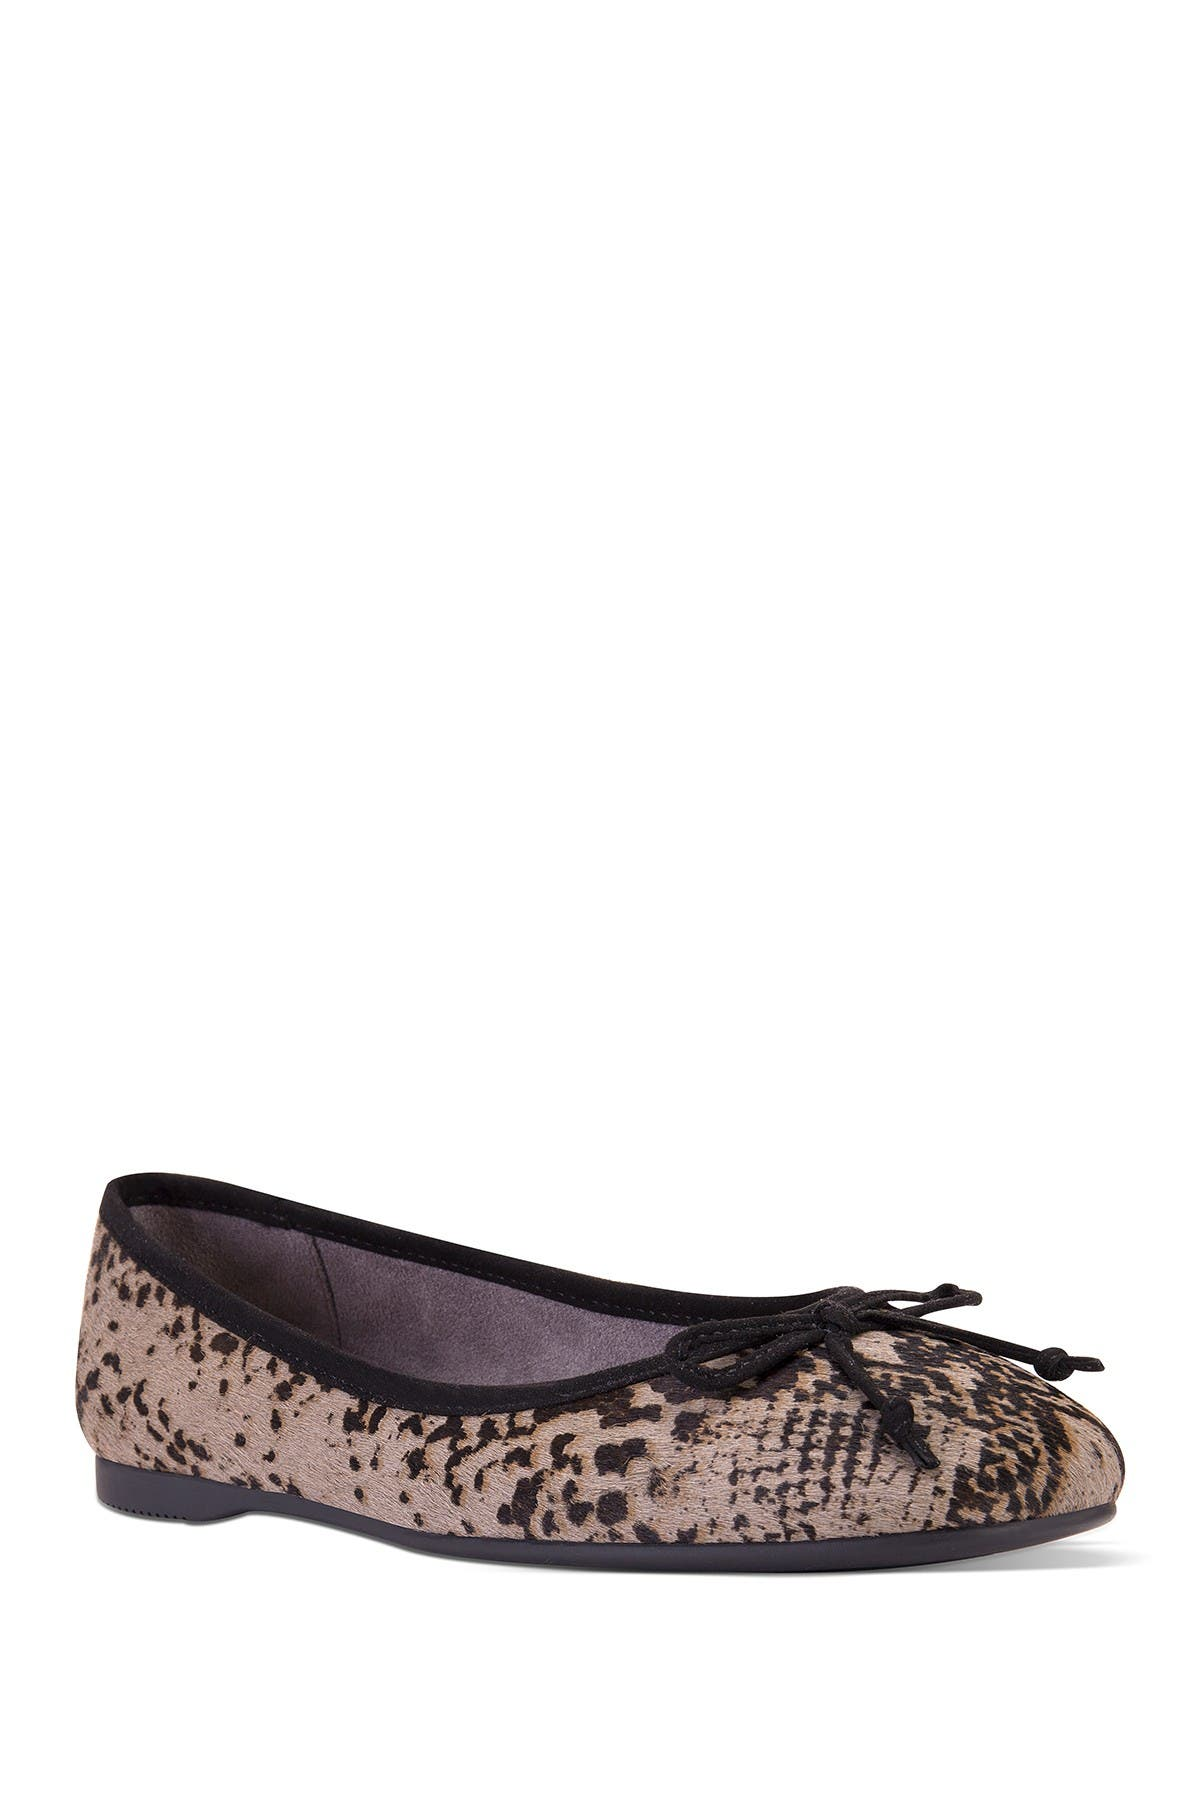 Image of Me Too Hilly Snake Print Genuine Calf Hair Ballet Flat